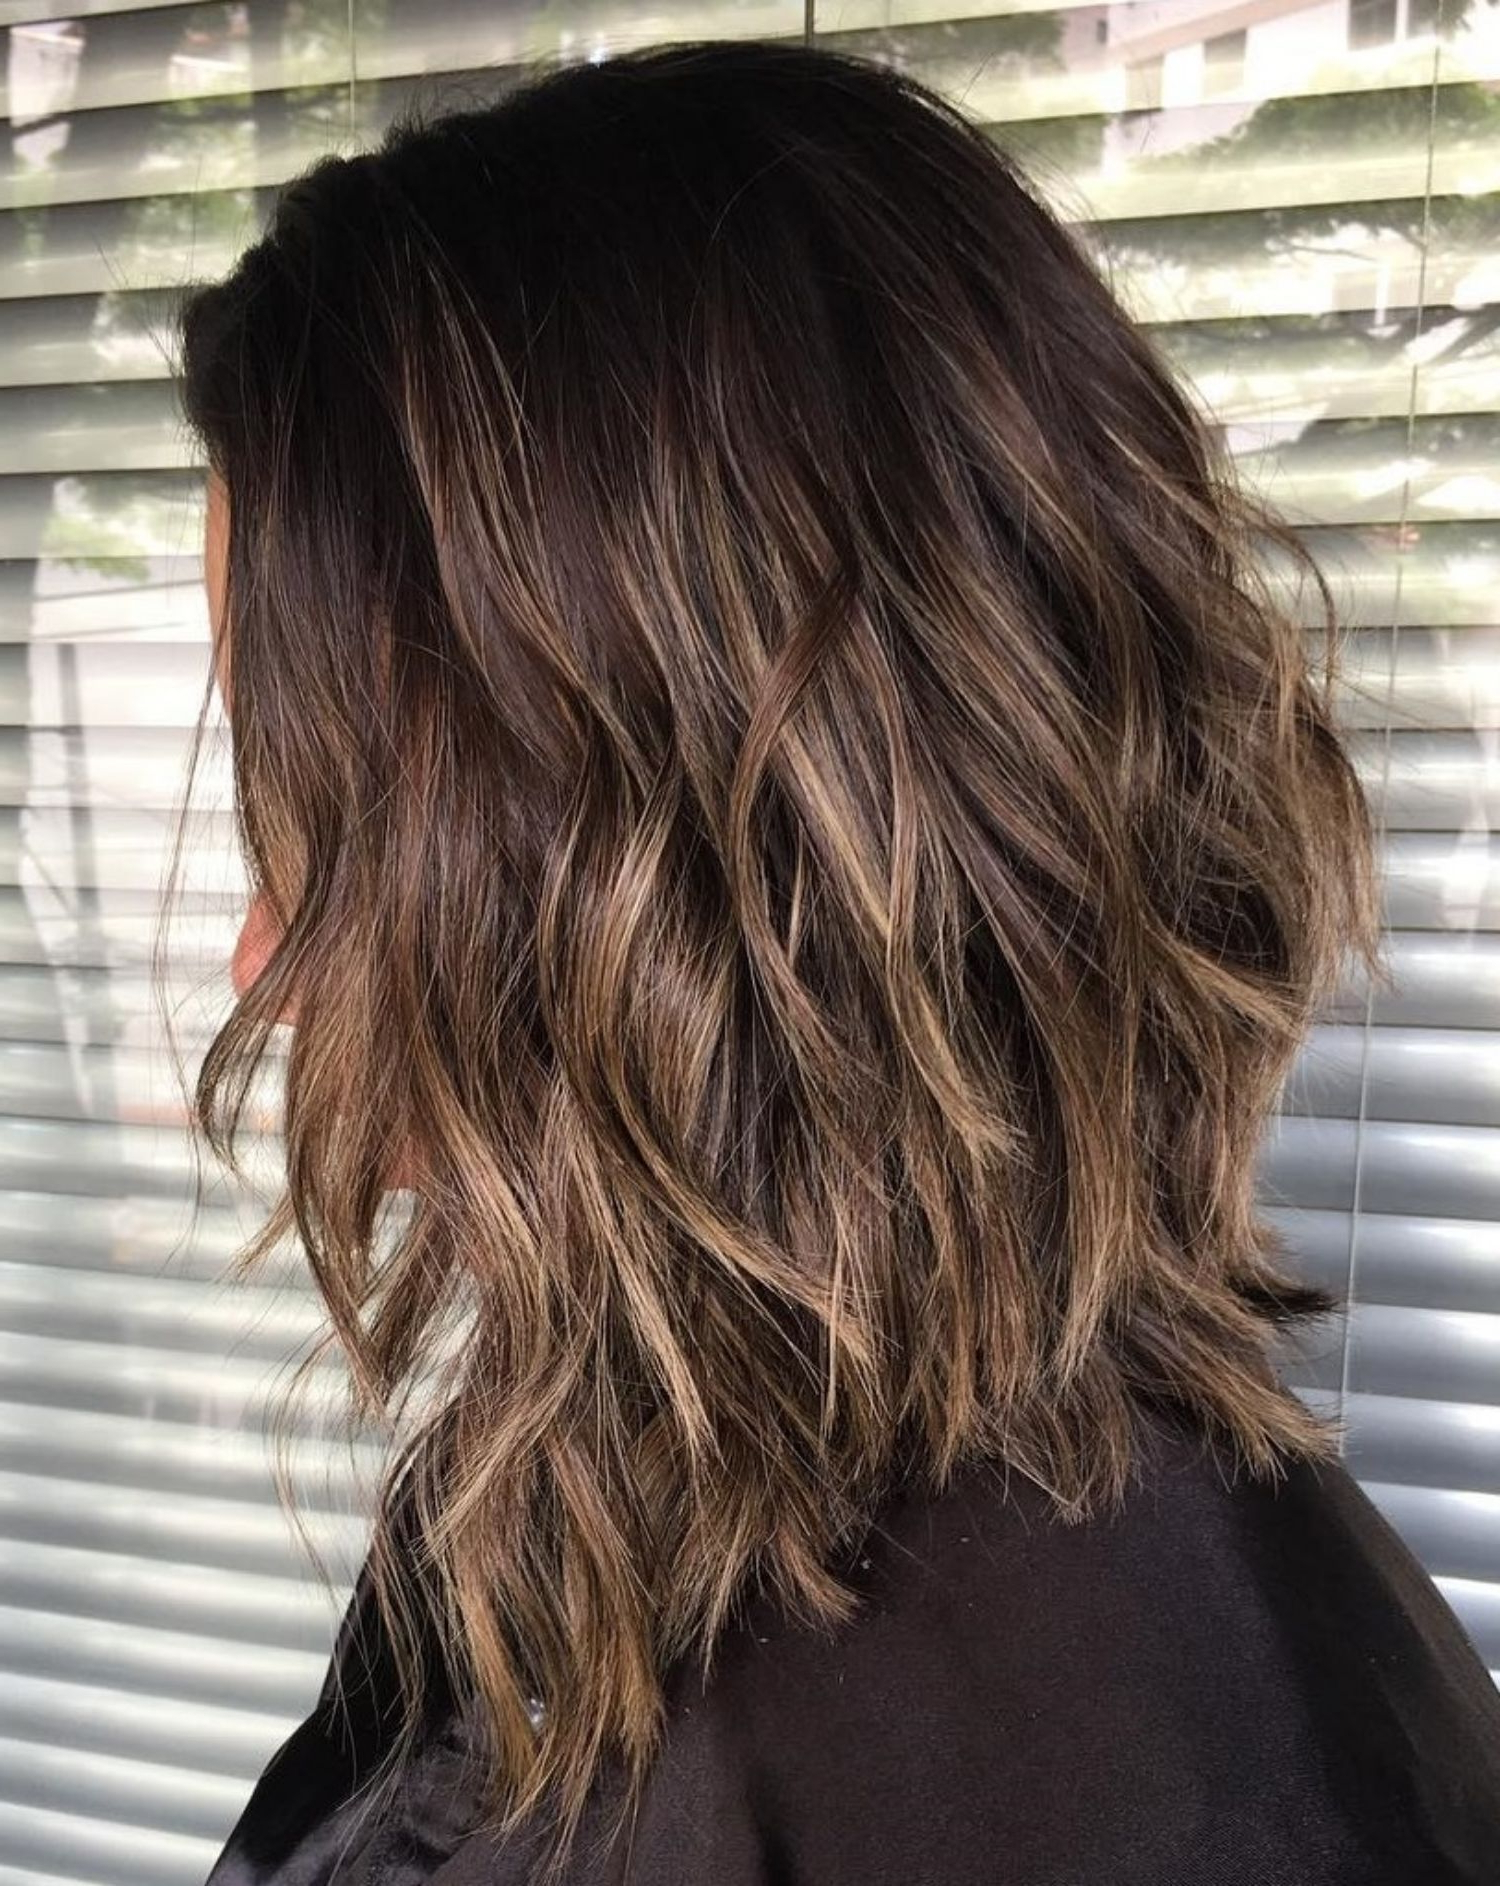 Pin On Hairstyles Haircuts Intended For Well Known Long Layered Chop Haircuts (Gallery 3 of 20)